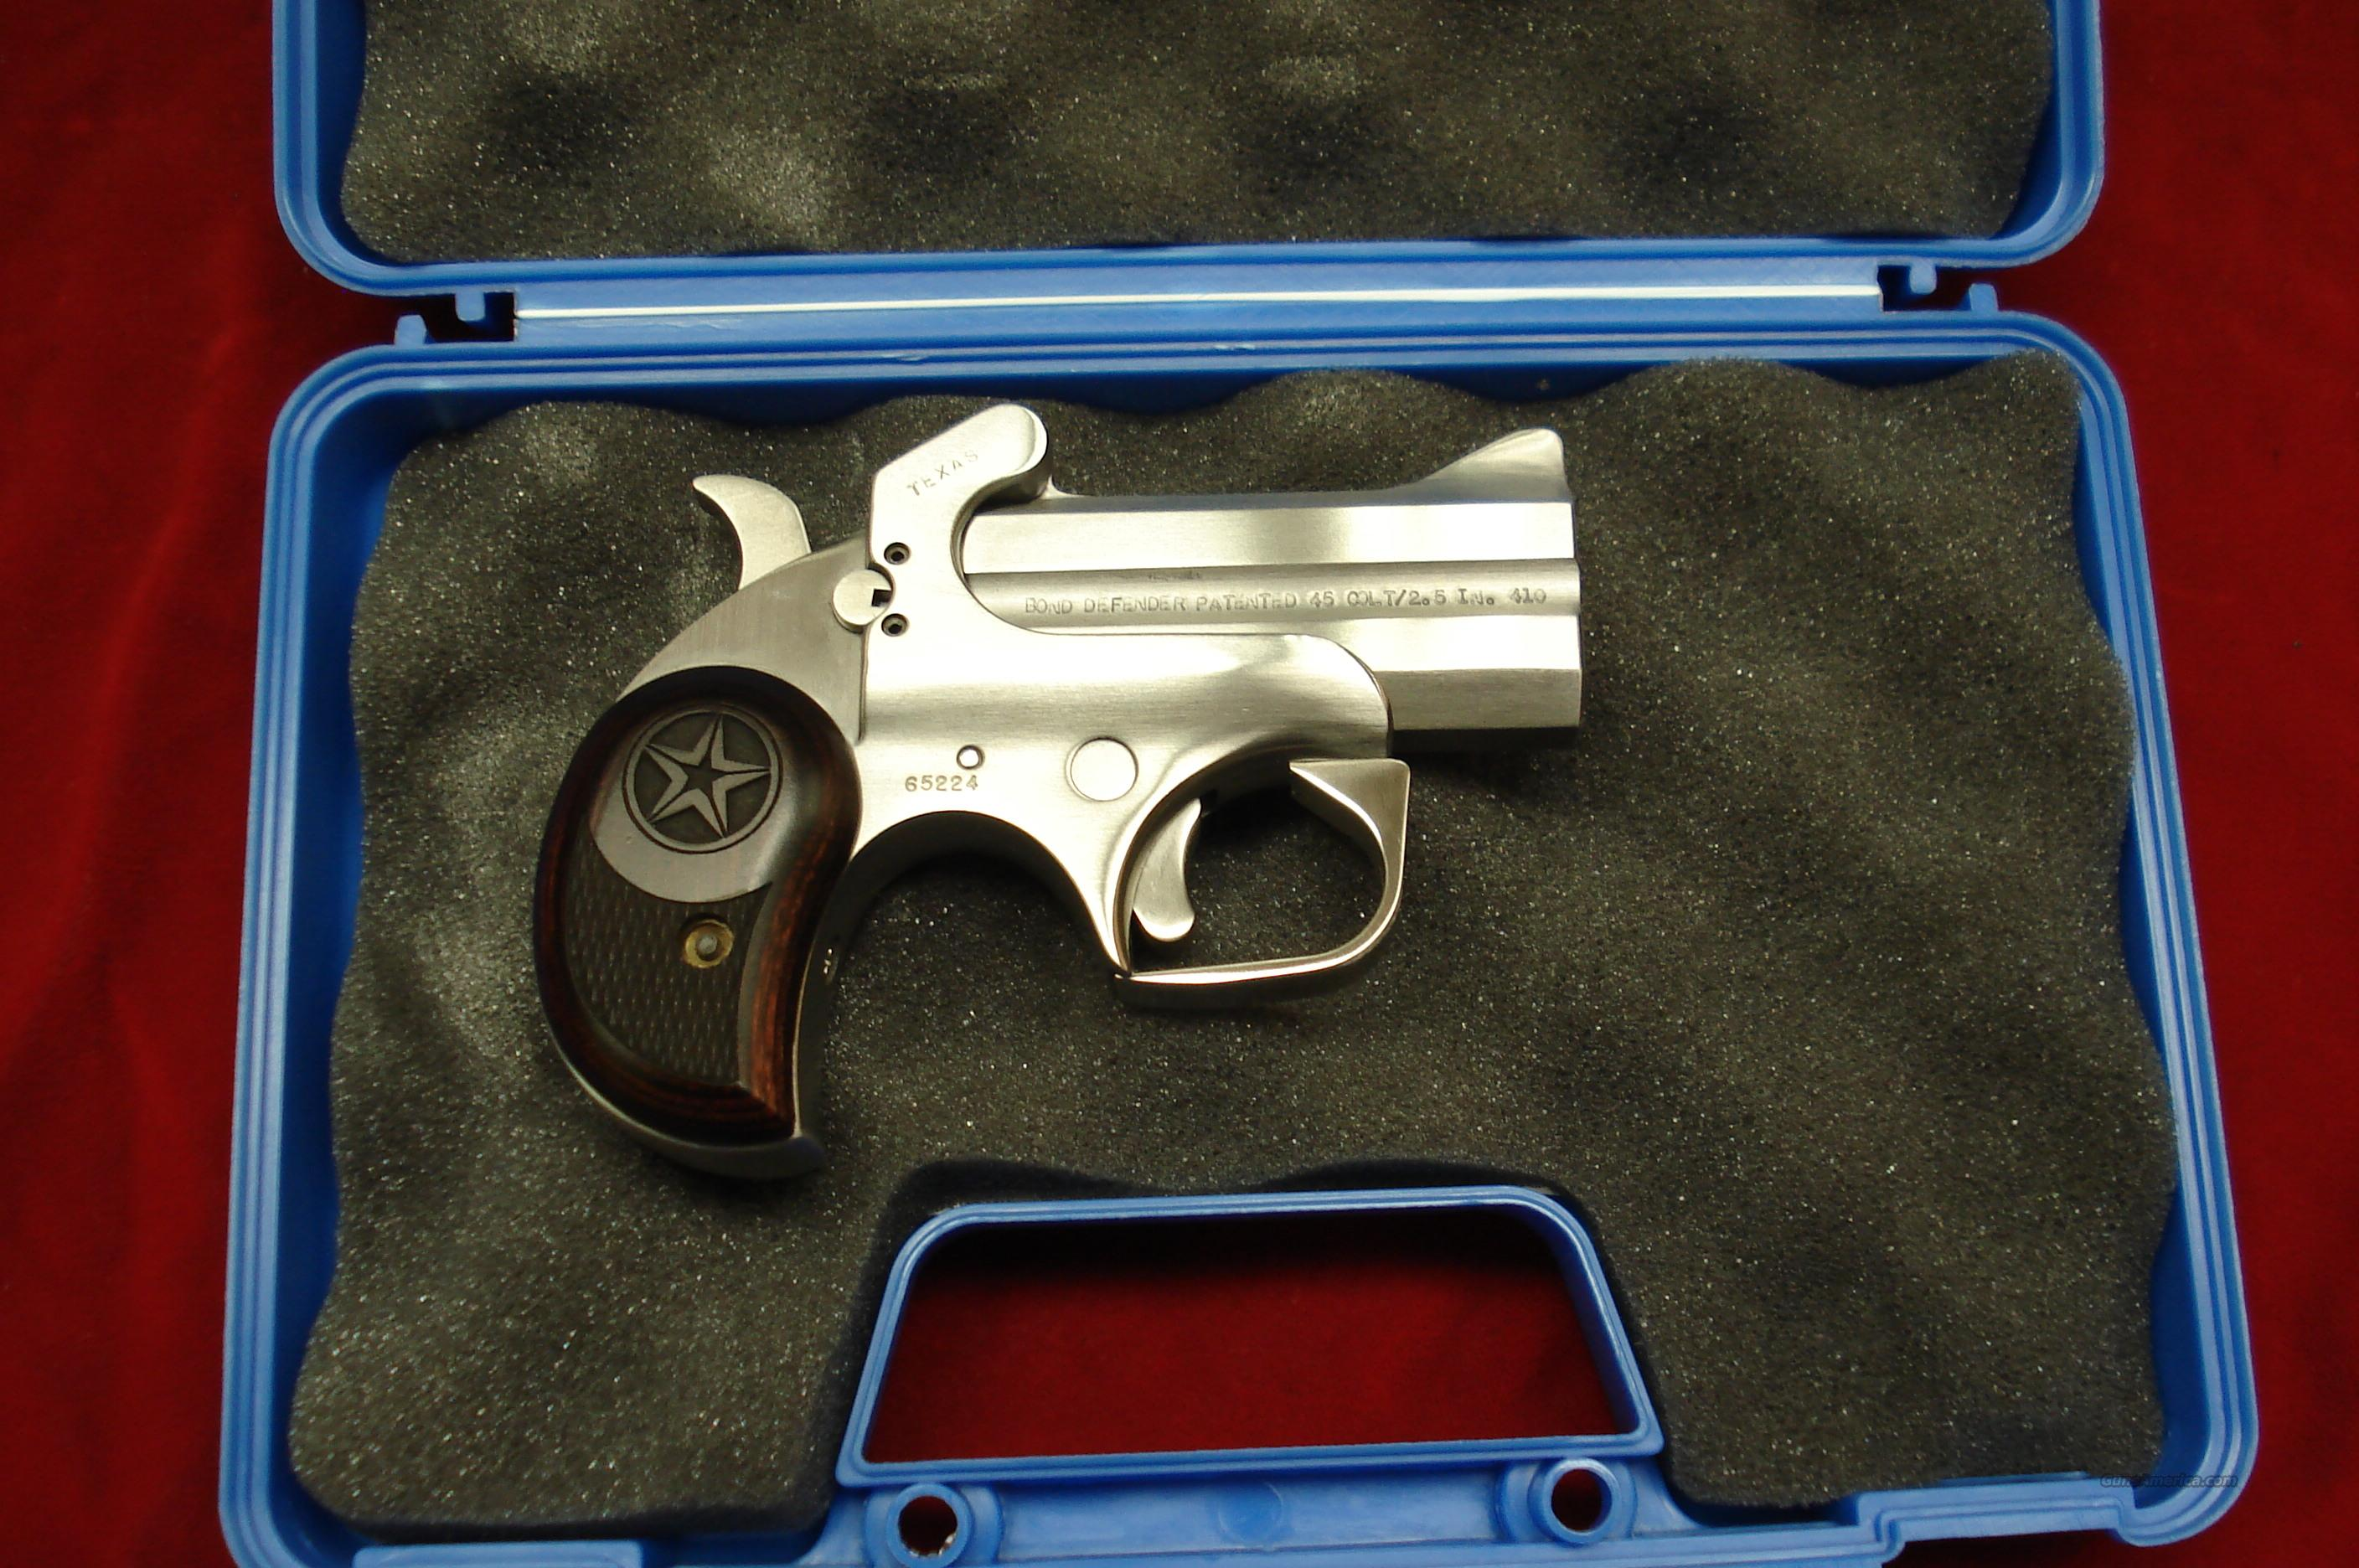 BOND ARMS TEXAS DEFENDER 410G/45COLT STAINLESS DERRINGER NEW  Guns > Pistols > Bond Derringers